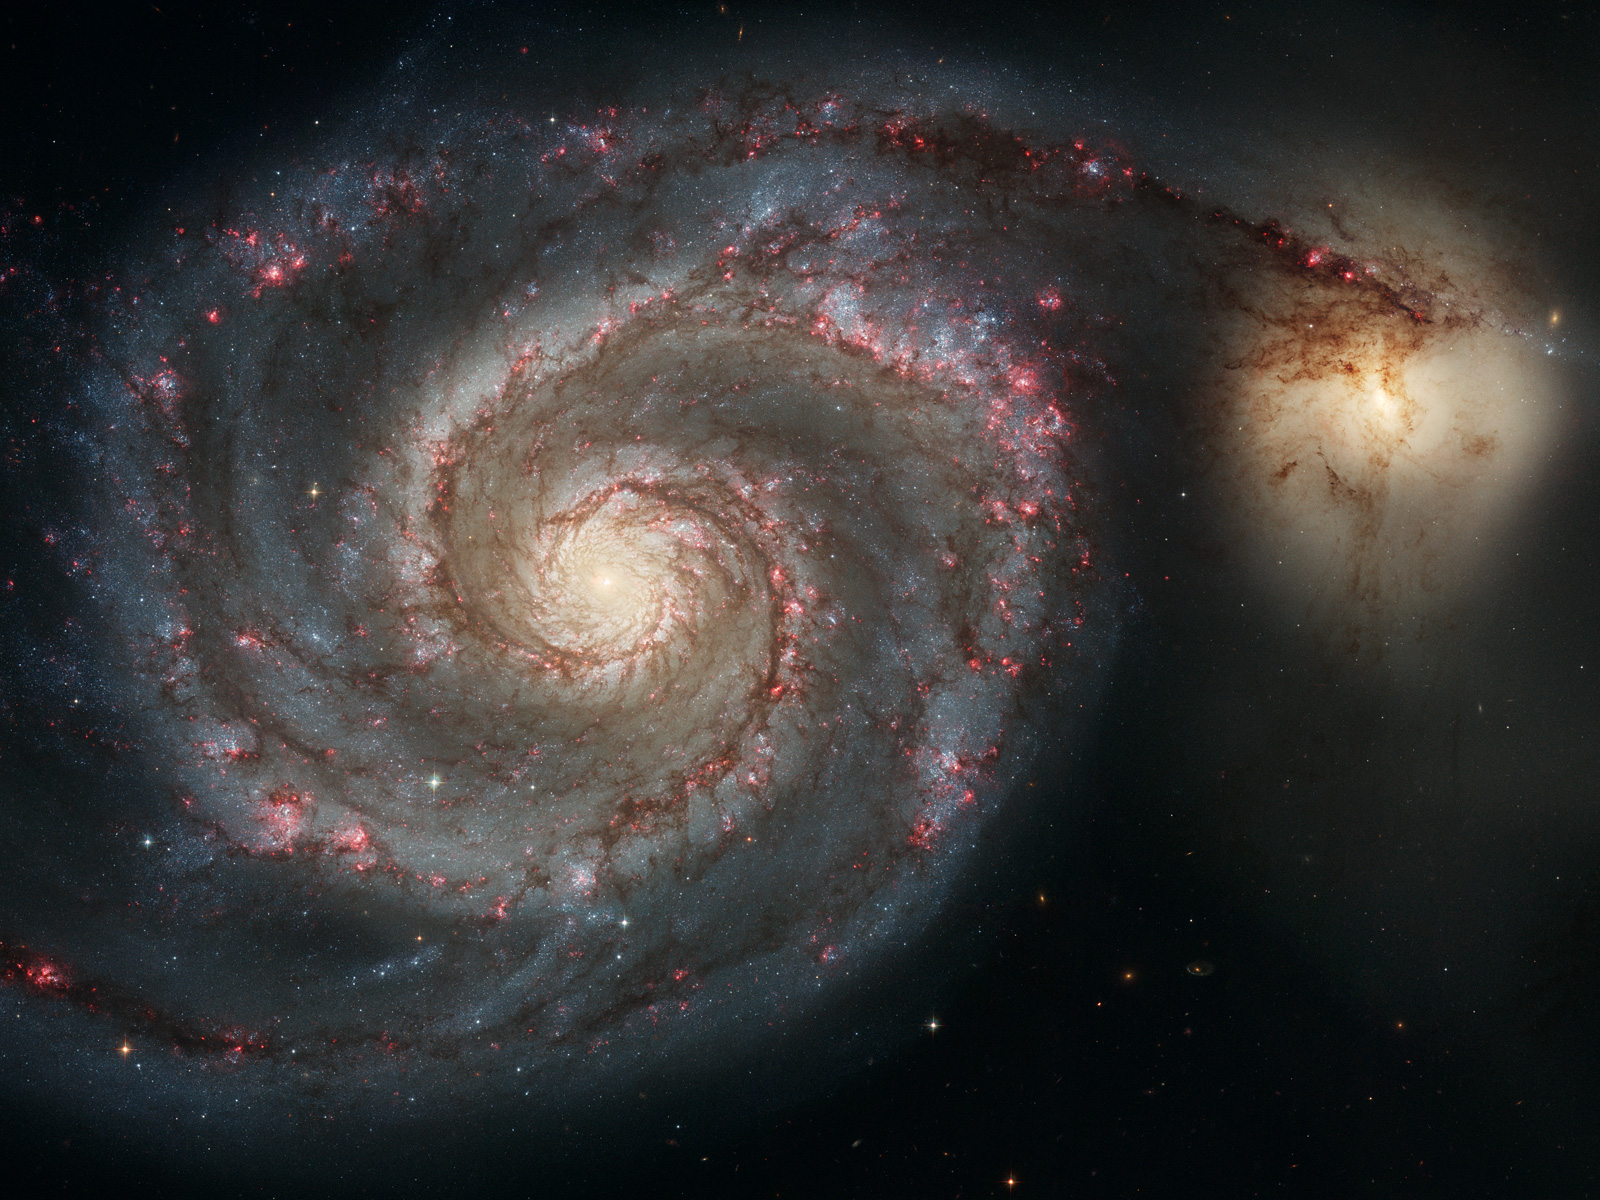 Whirlpool Galaxy M51 and companion by Hubble